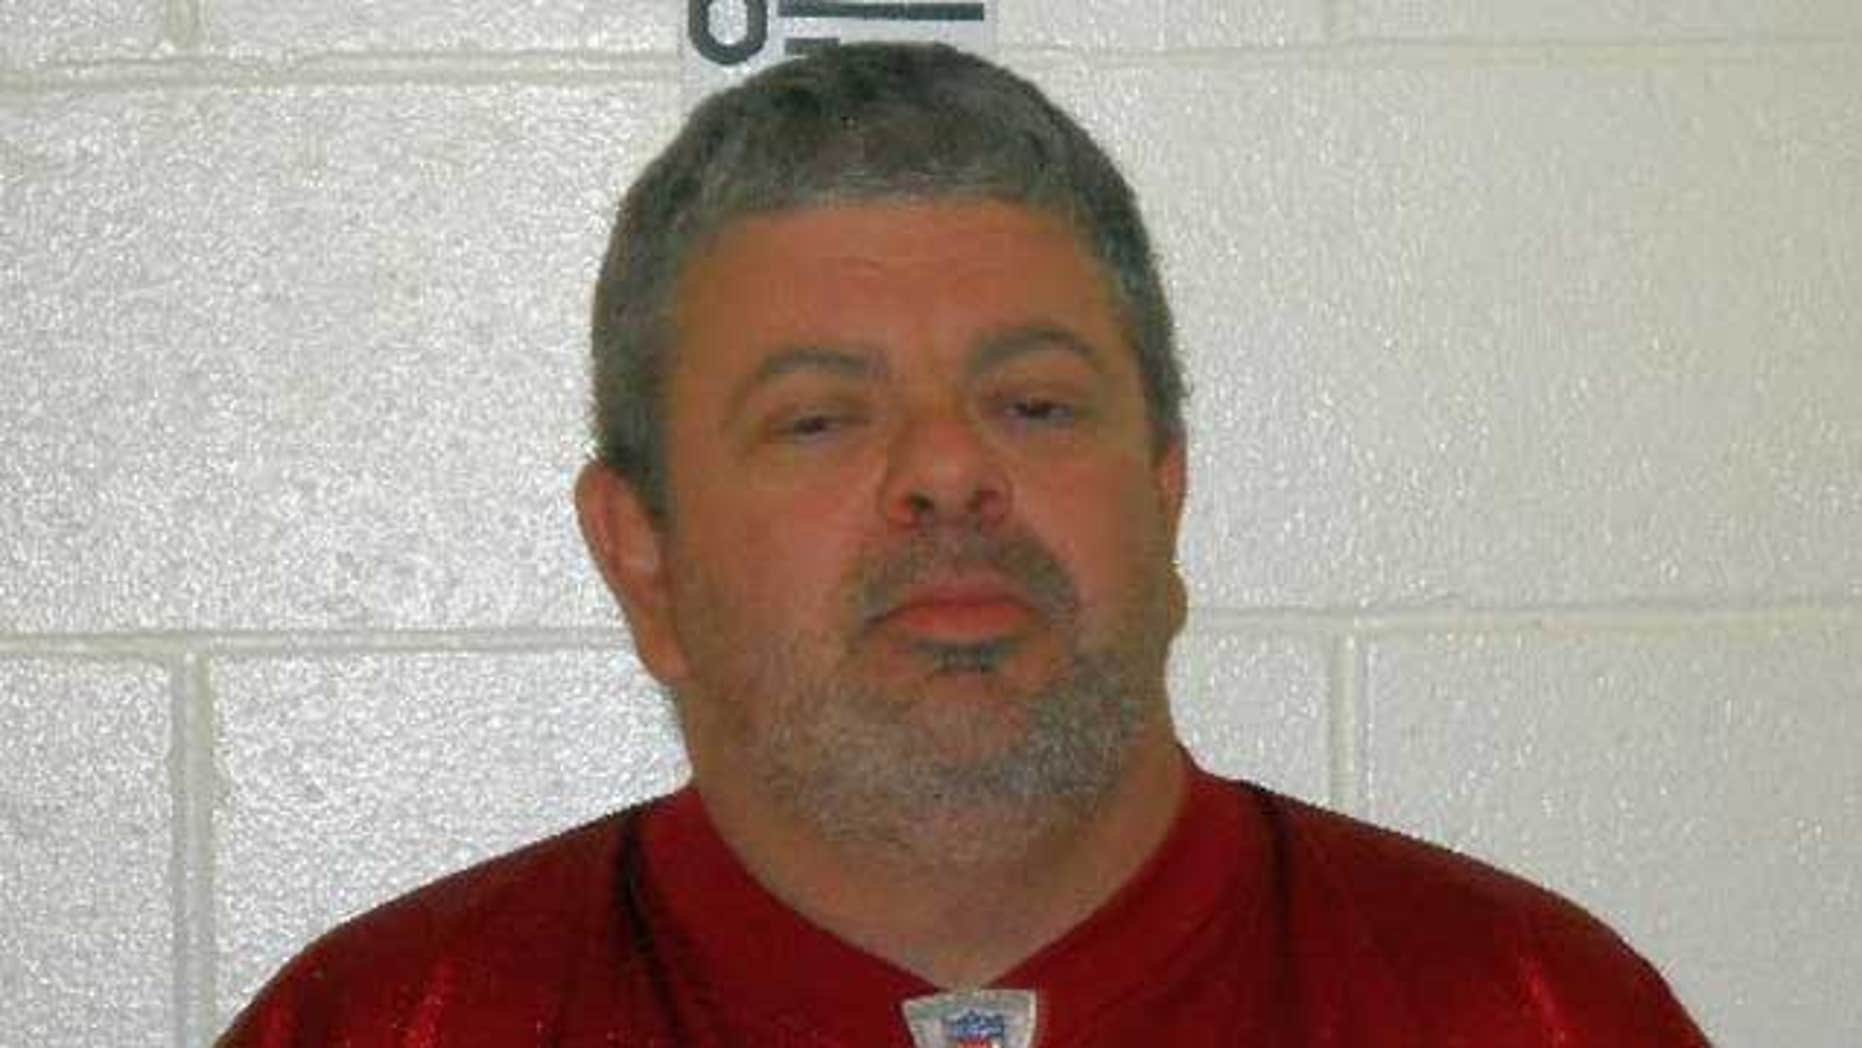 Timothy Courtois is being held on $50,000 bail in a Maine jail.